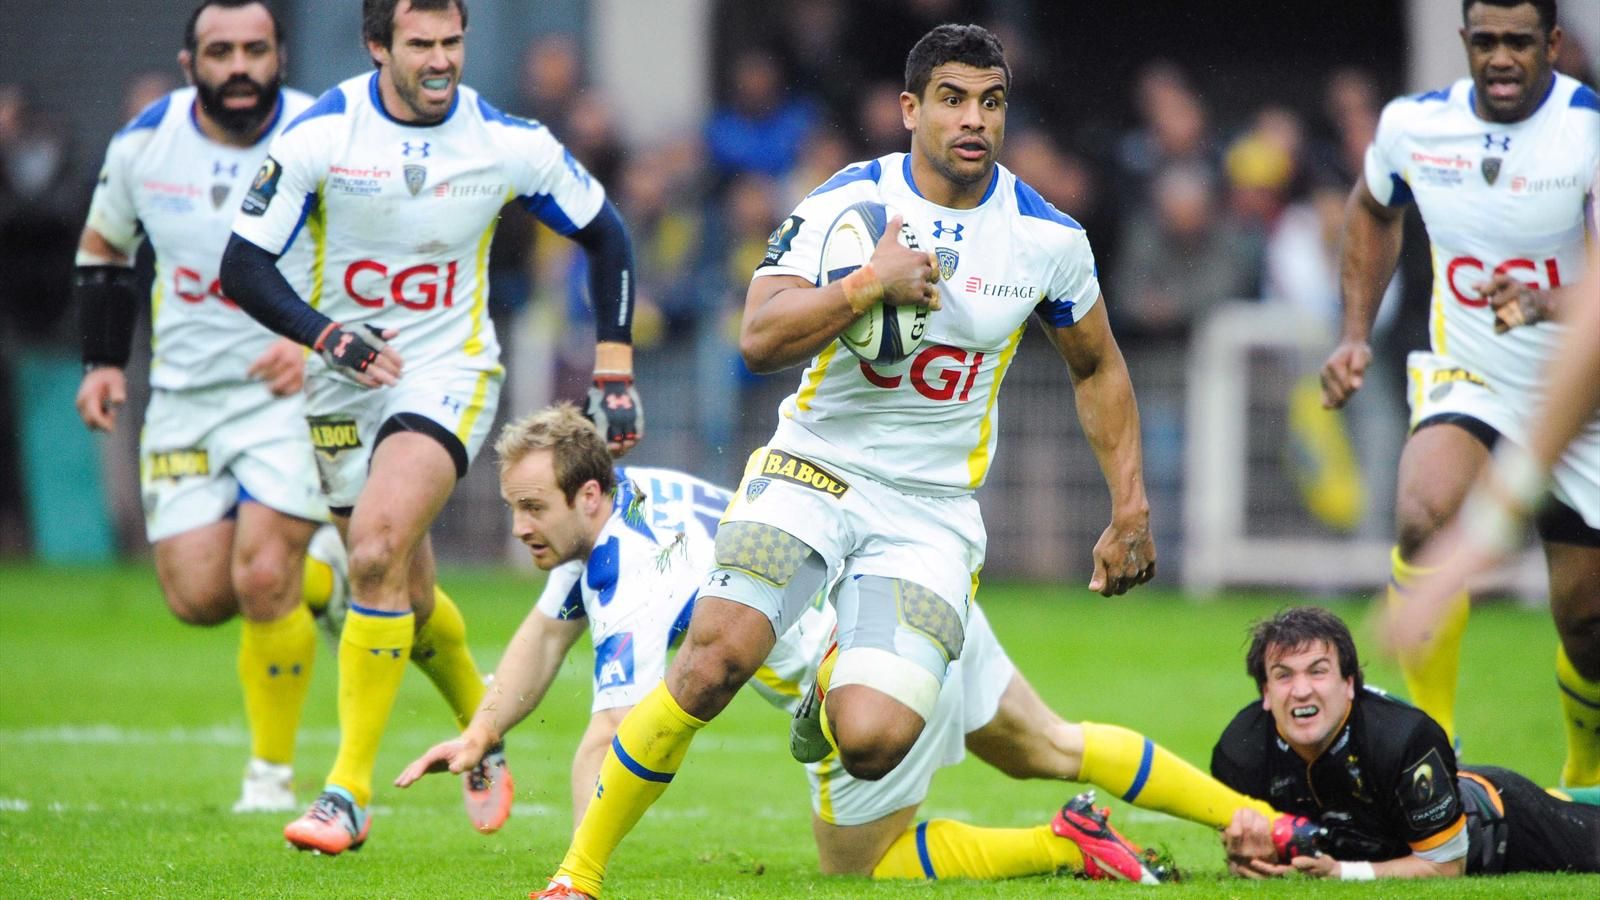 Champions cup la coupe d europe bonheur de wesley fofana clermont champions cup 2014 2015 - Calendrier coupe europe rugby 2015 ...